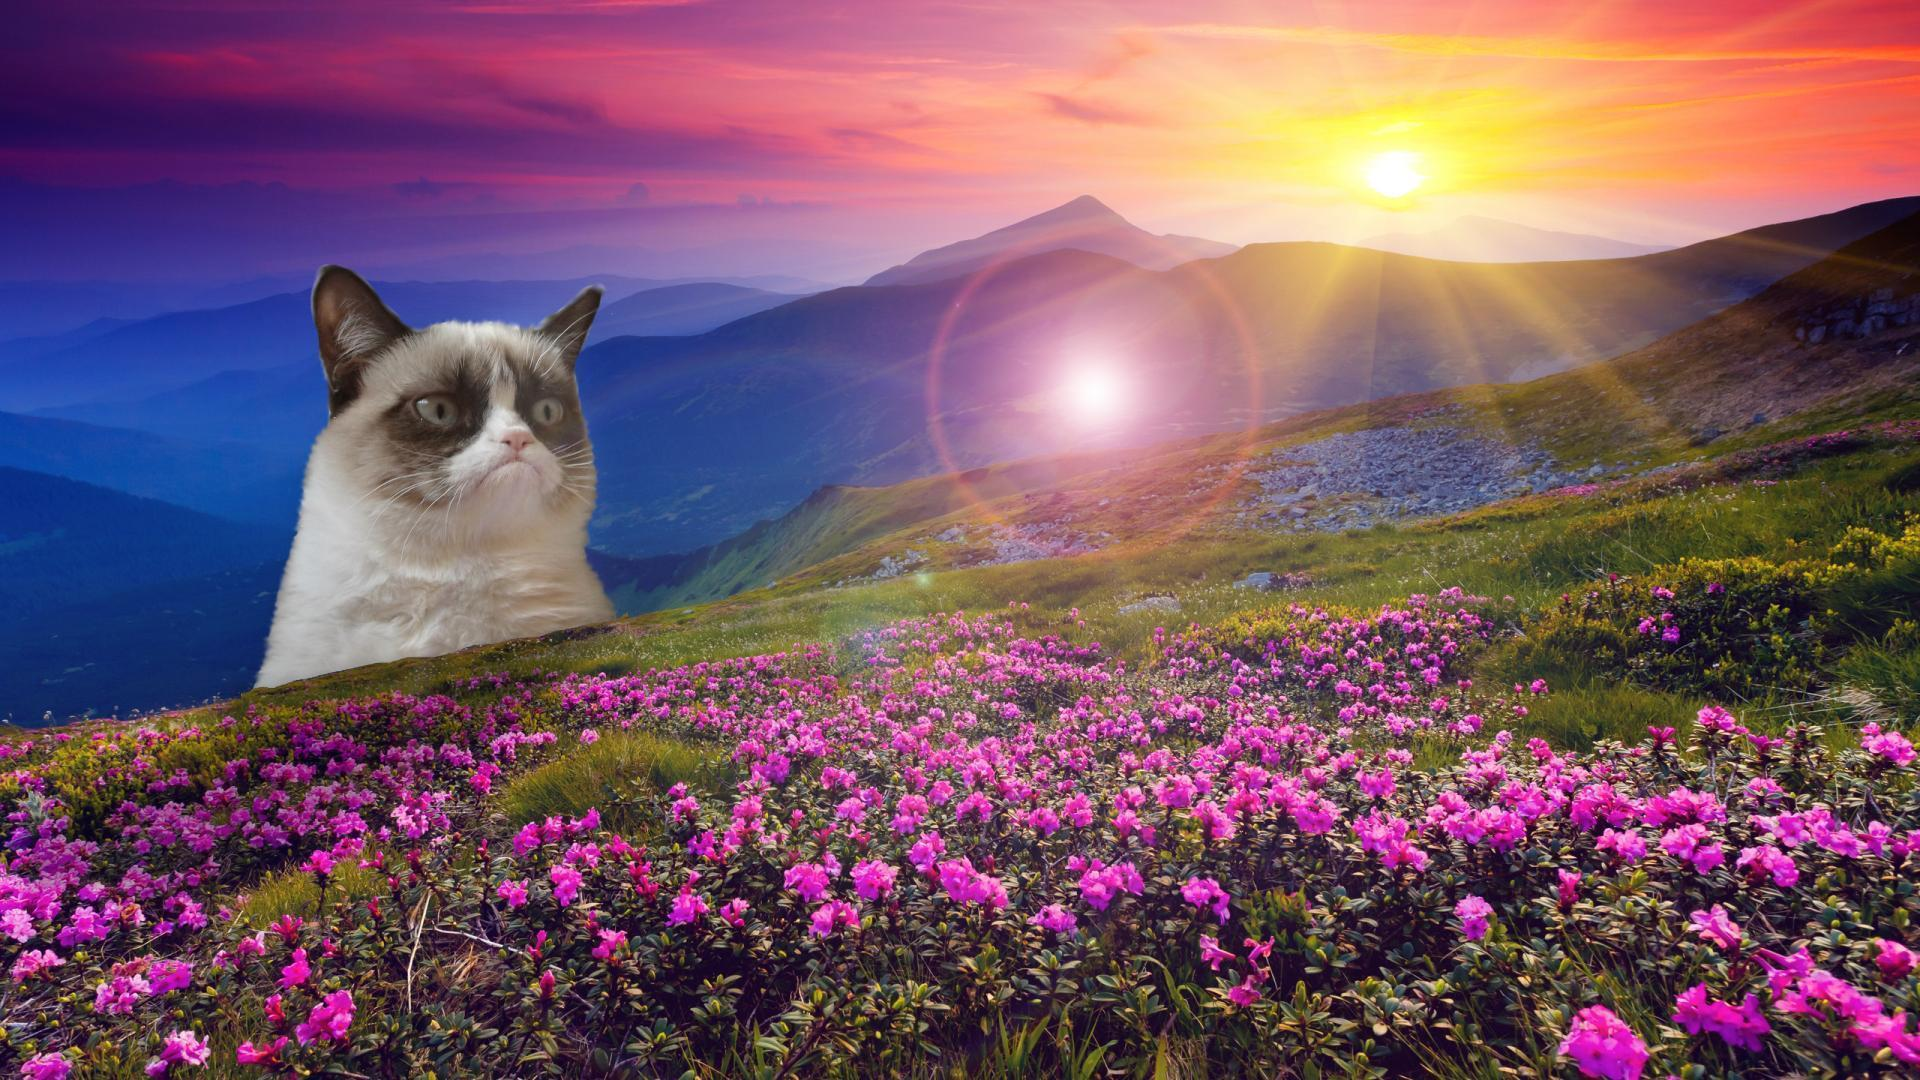 grumpy cat hd wallpapers - photo #9